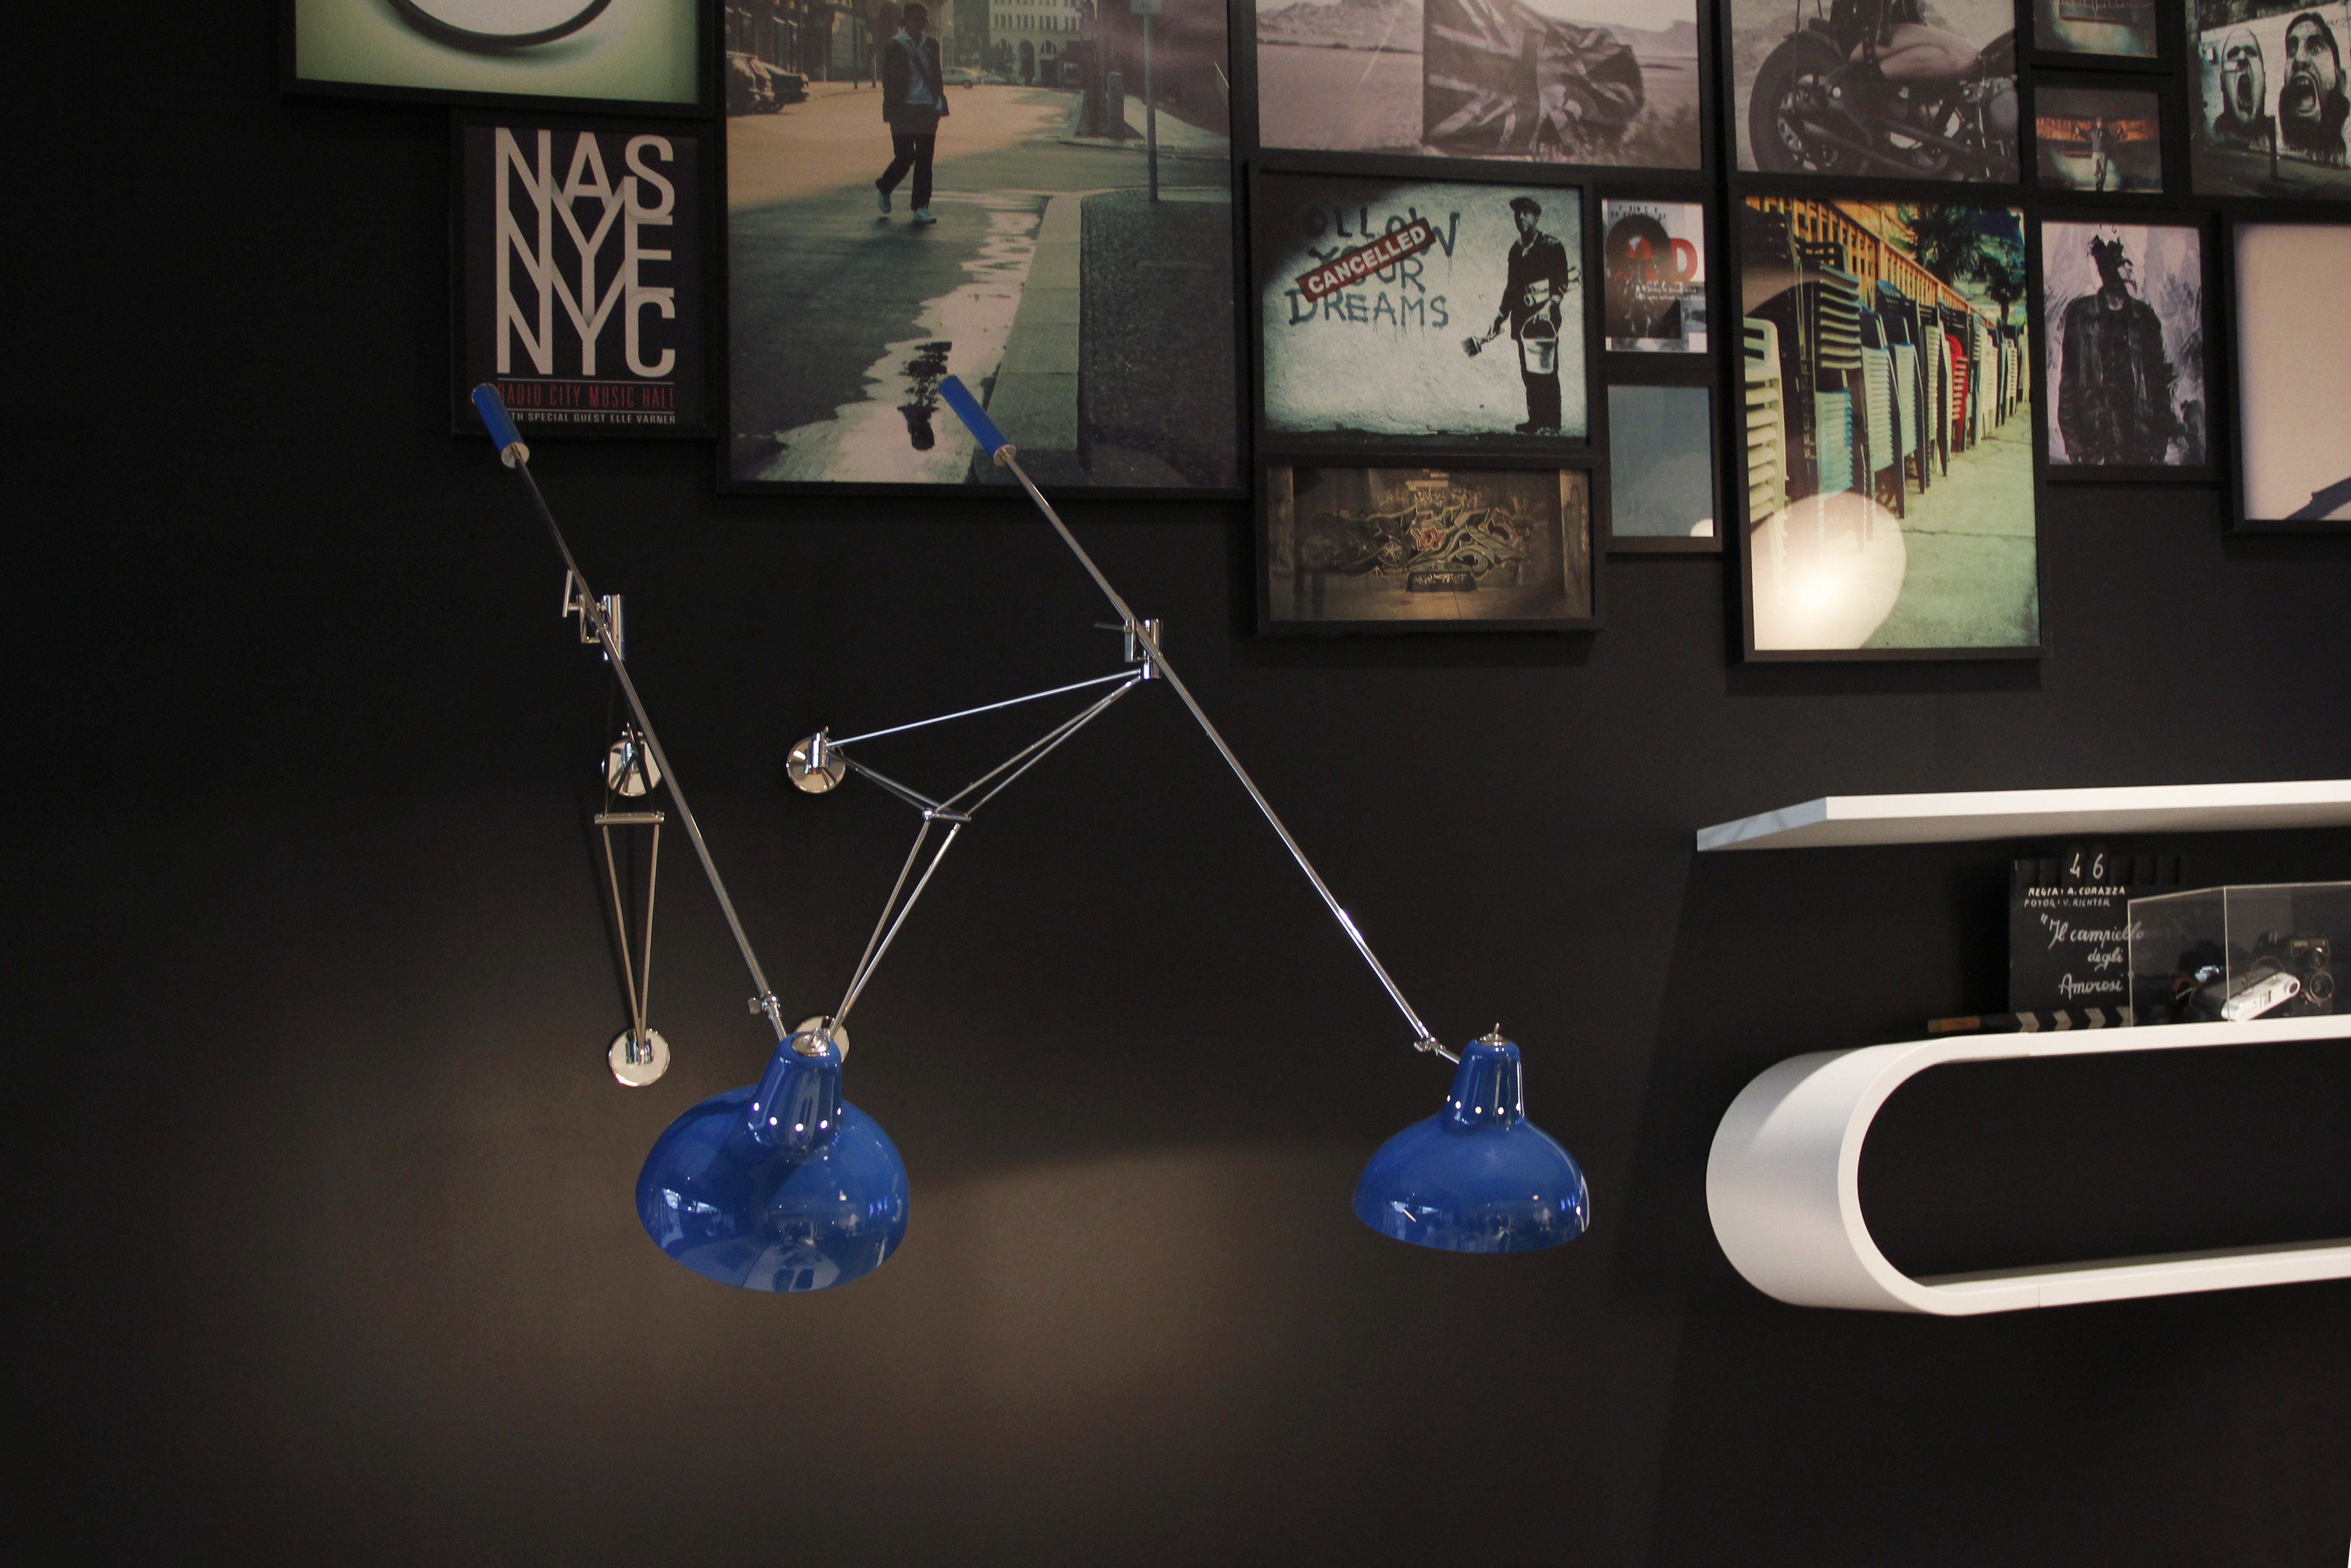 Diana Wall Lamp Seems The Right Lighting Design For Your Loft 4 Diana Wall Lamp Diana Wall Lamp Seems The Right Lighting Design For Your Loft Diana Wall Lamp Seems The Right Lighting Design For Your Loft 4